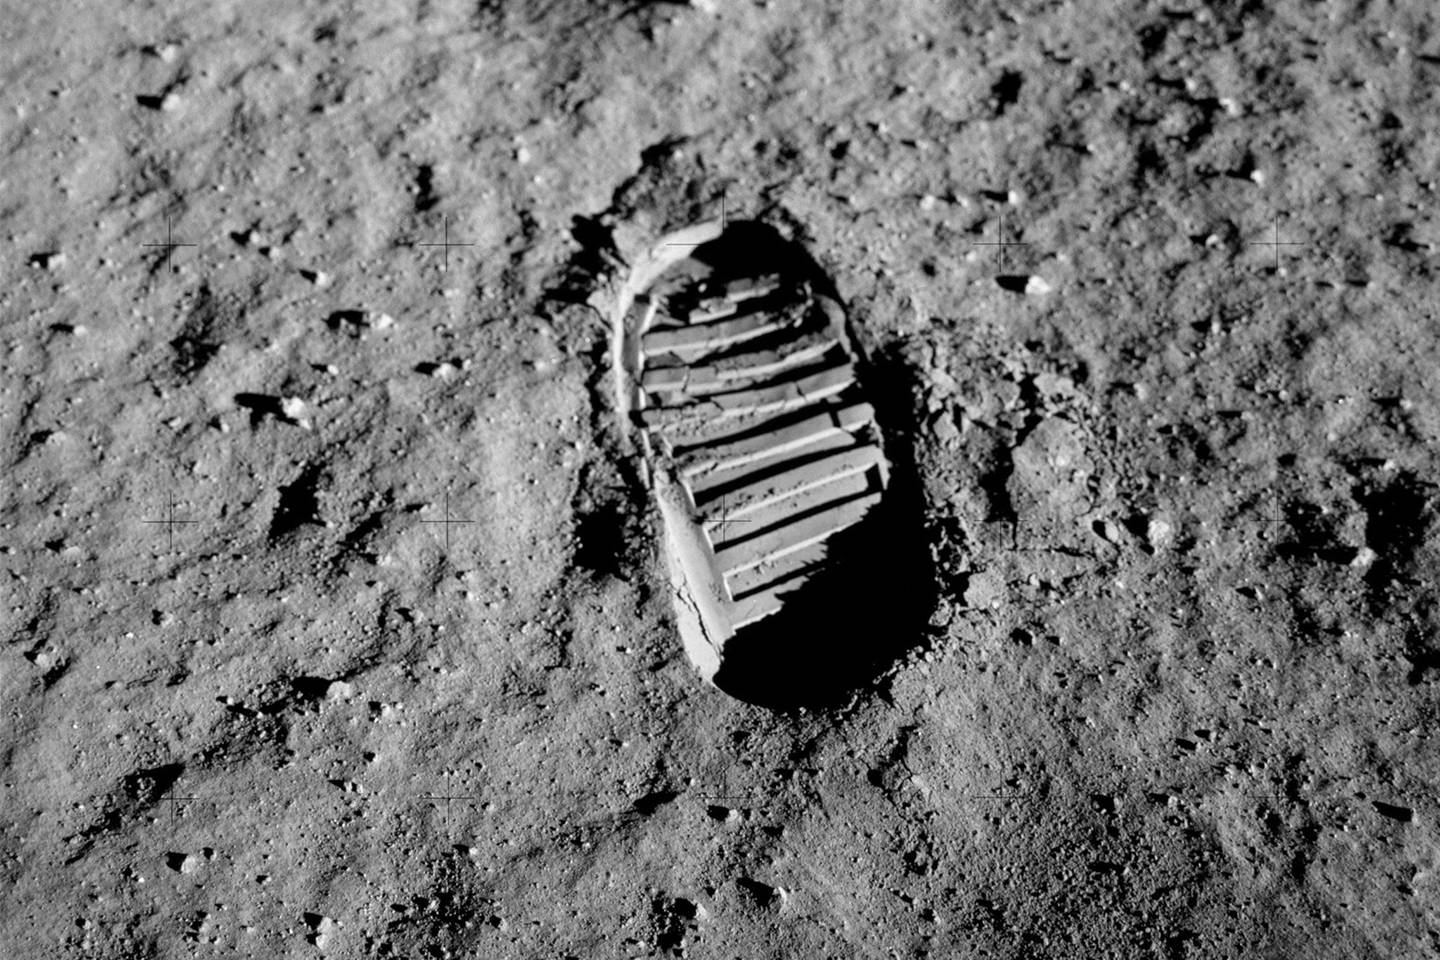 Photo of Buzz Aldrin's boot print on the moon